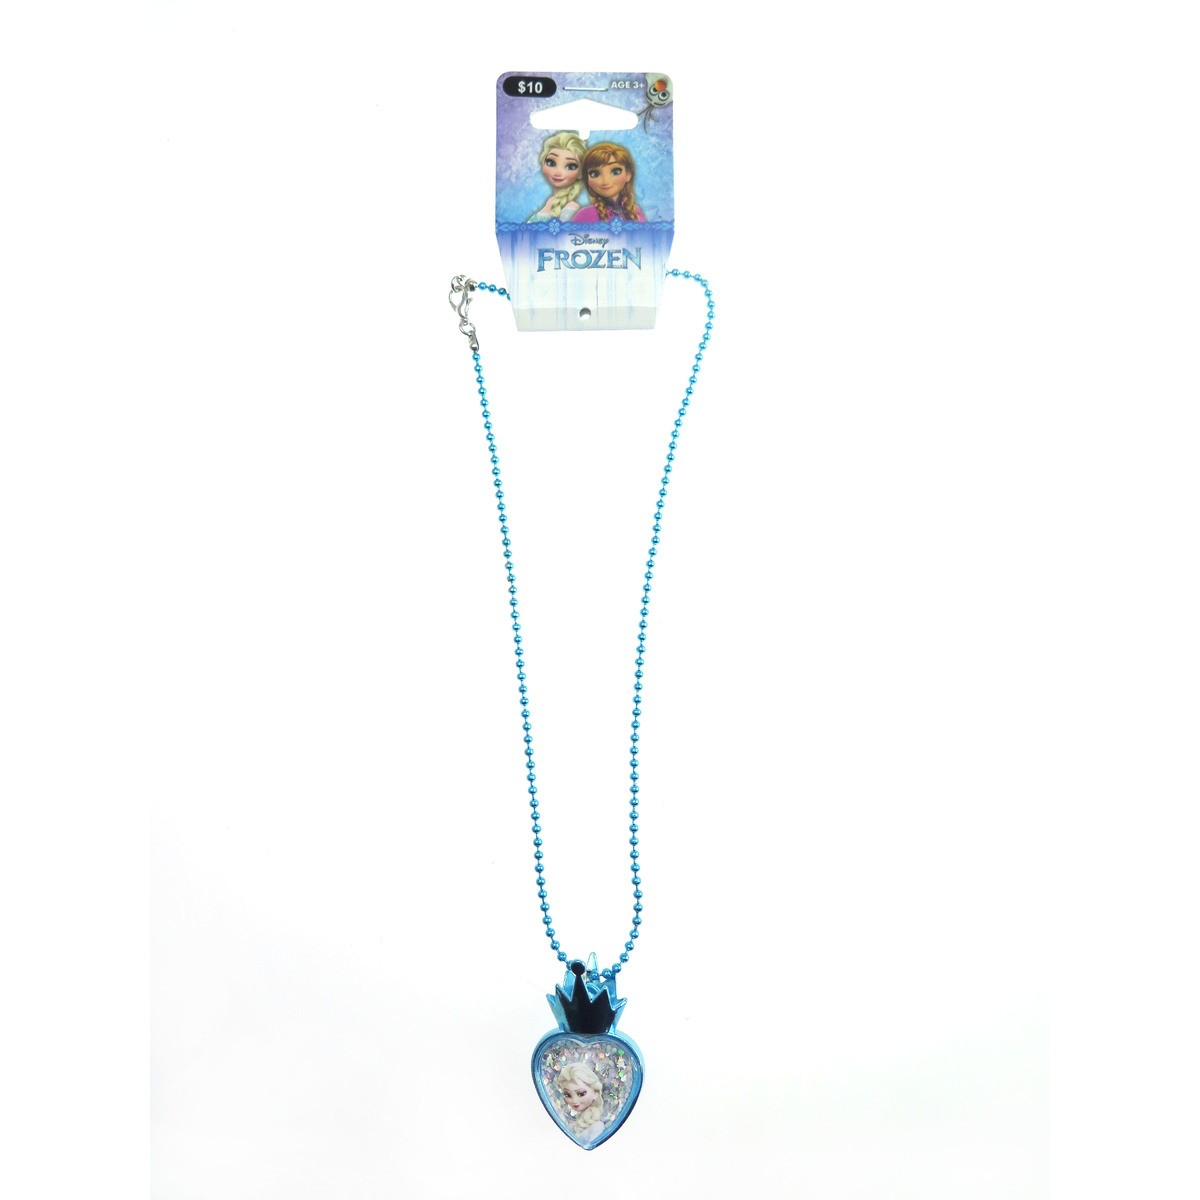 Disney Frozen Heart Necklace Intended For Best And Newest Heart Fan Pendant Necklaces (Gallery 19 of 25)